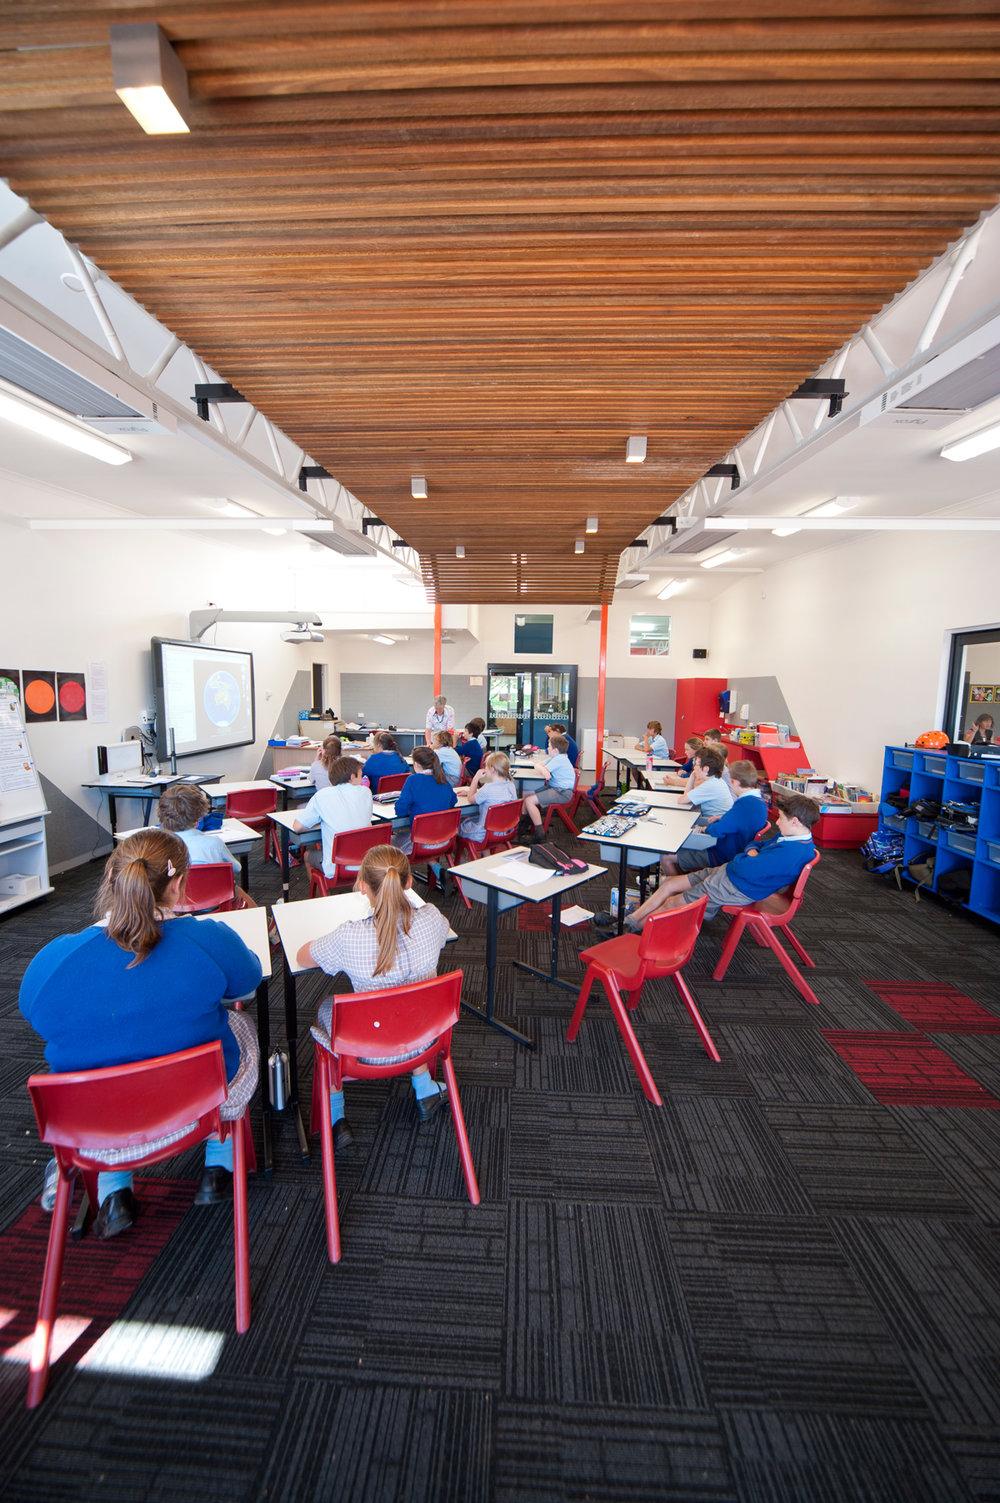 Secared-Heart-Primary-School,-Ulverstone-(5).jpg